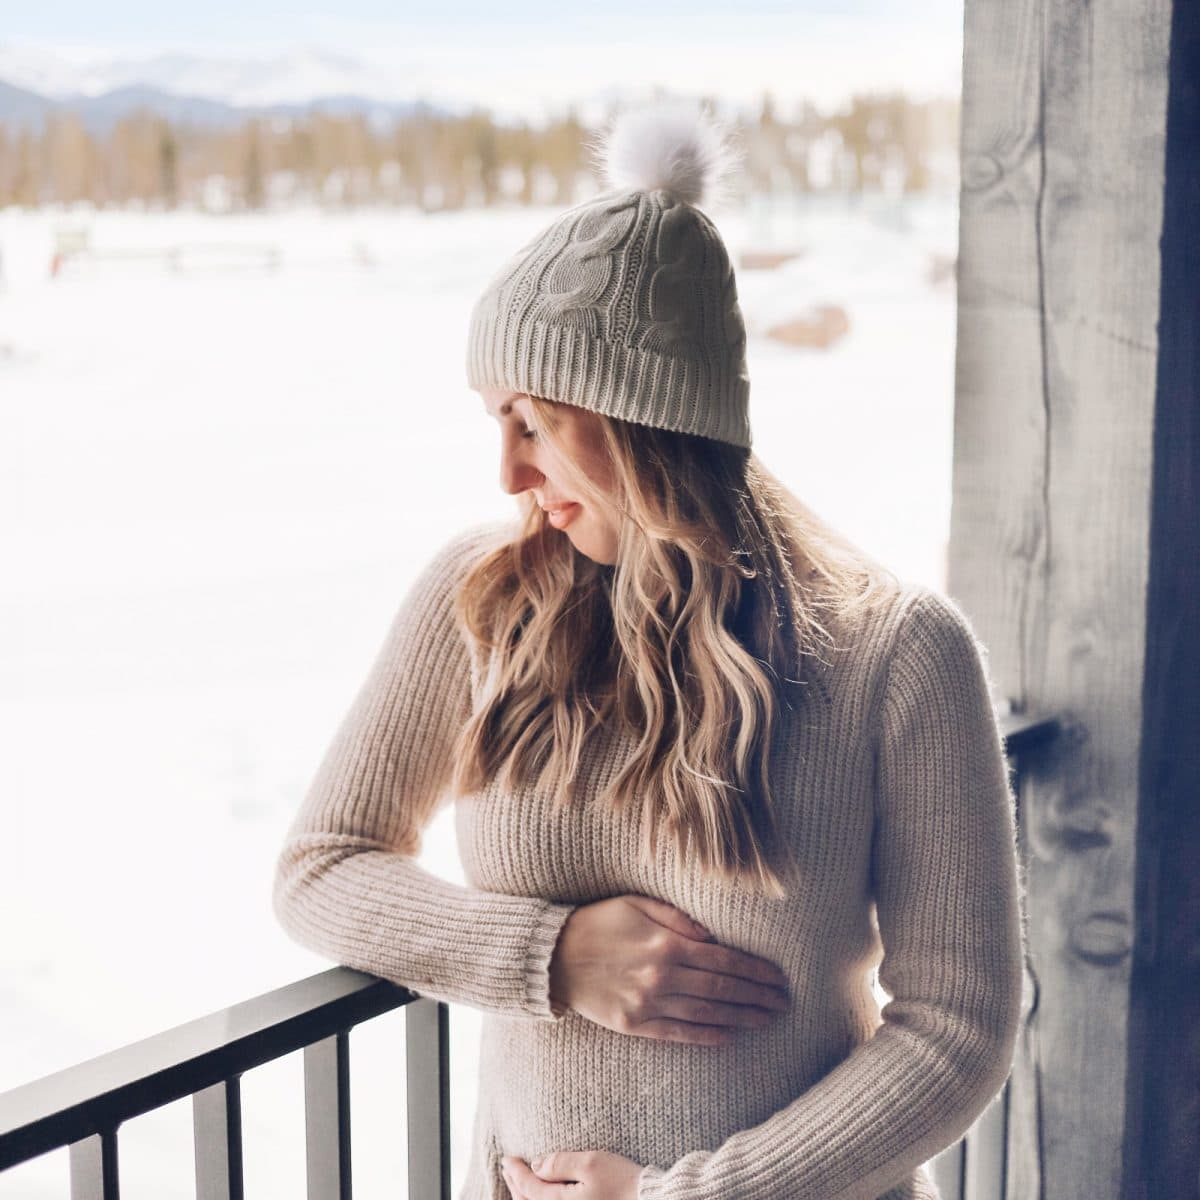 Houston blogger Meg O. shares her 12 week pregnancy update